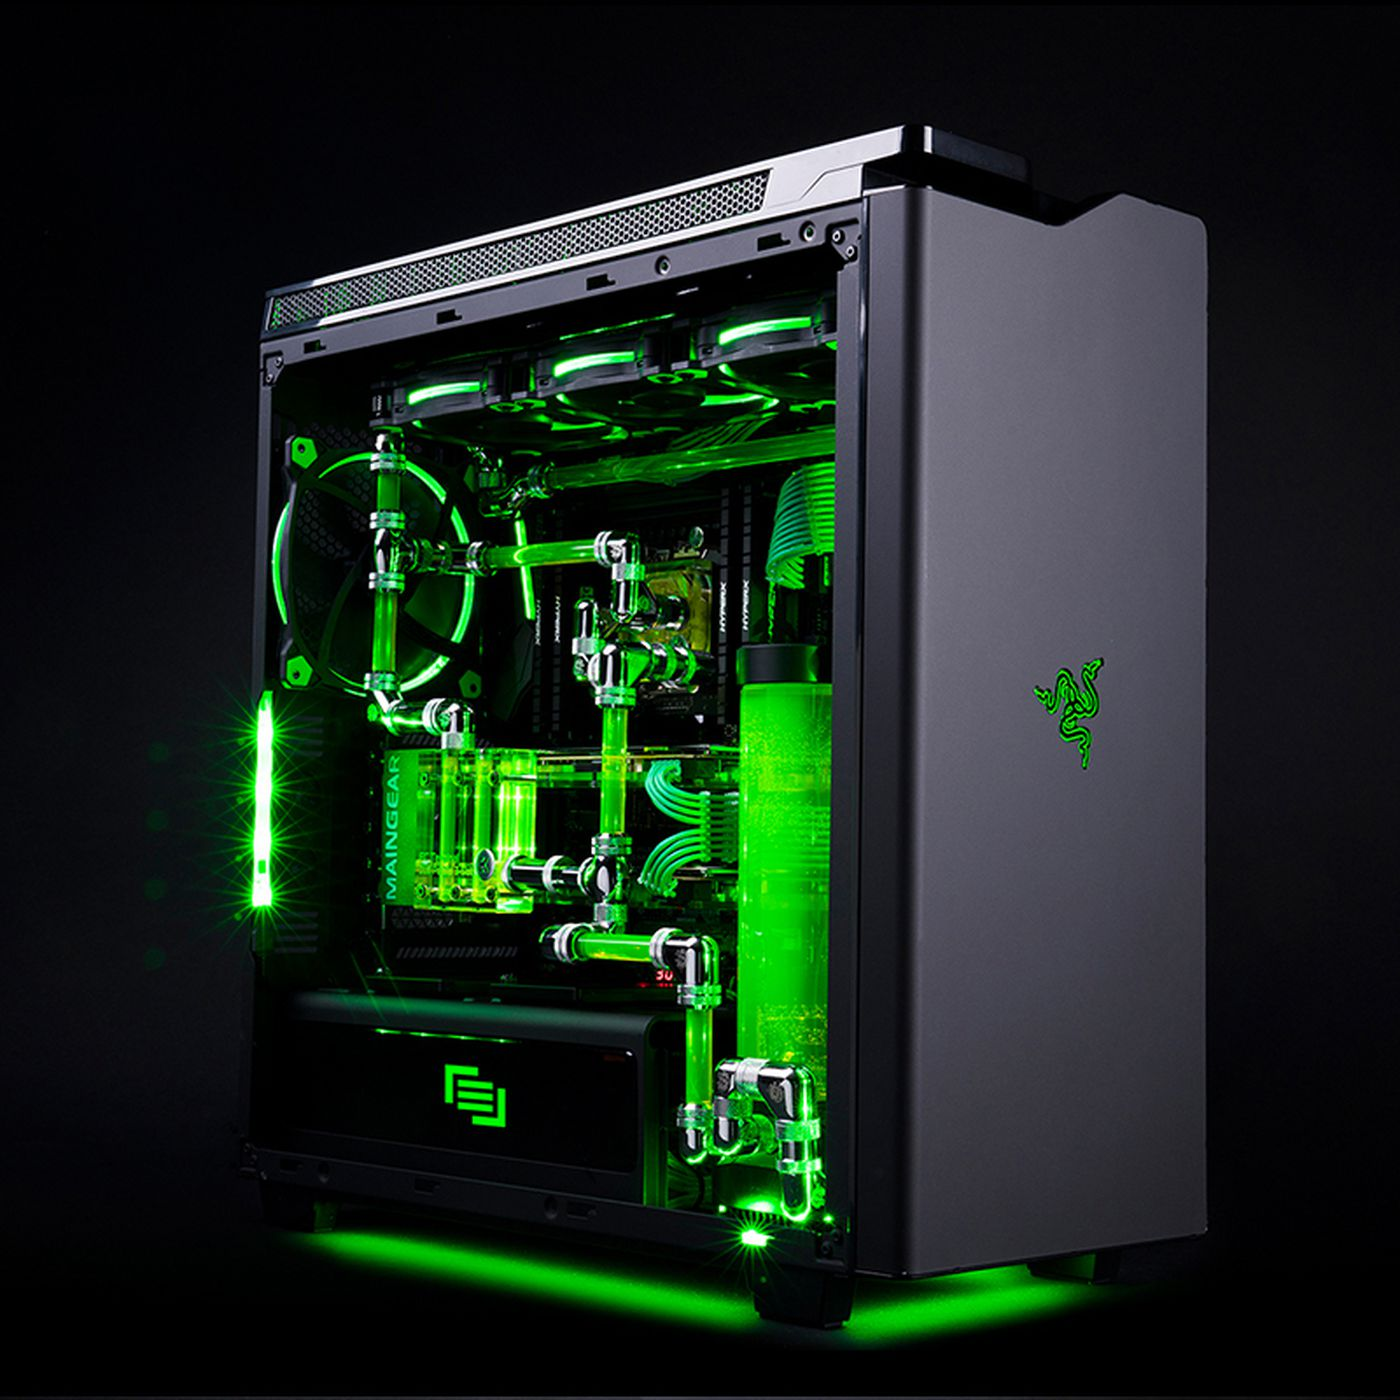 Liquid Cooled Pc >> The Glowing Green Liquid In This Razer Maingear Gaming Pc Probably